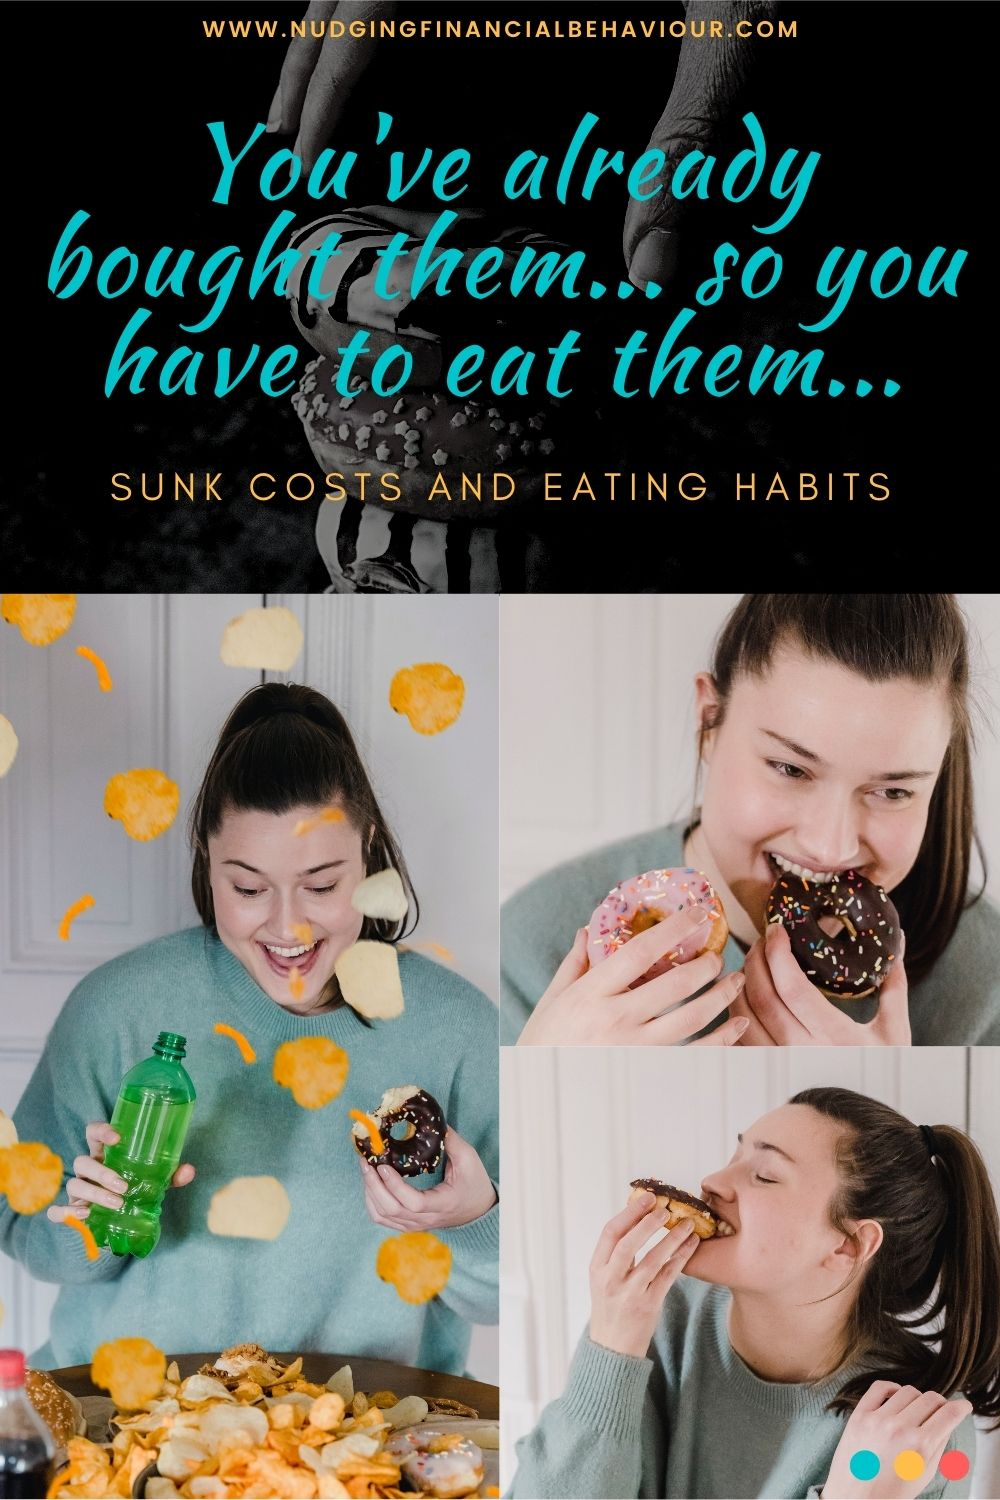 Sunk costs and eating habits